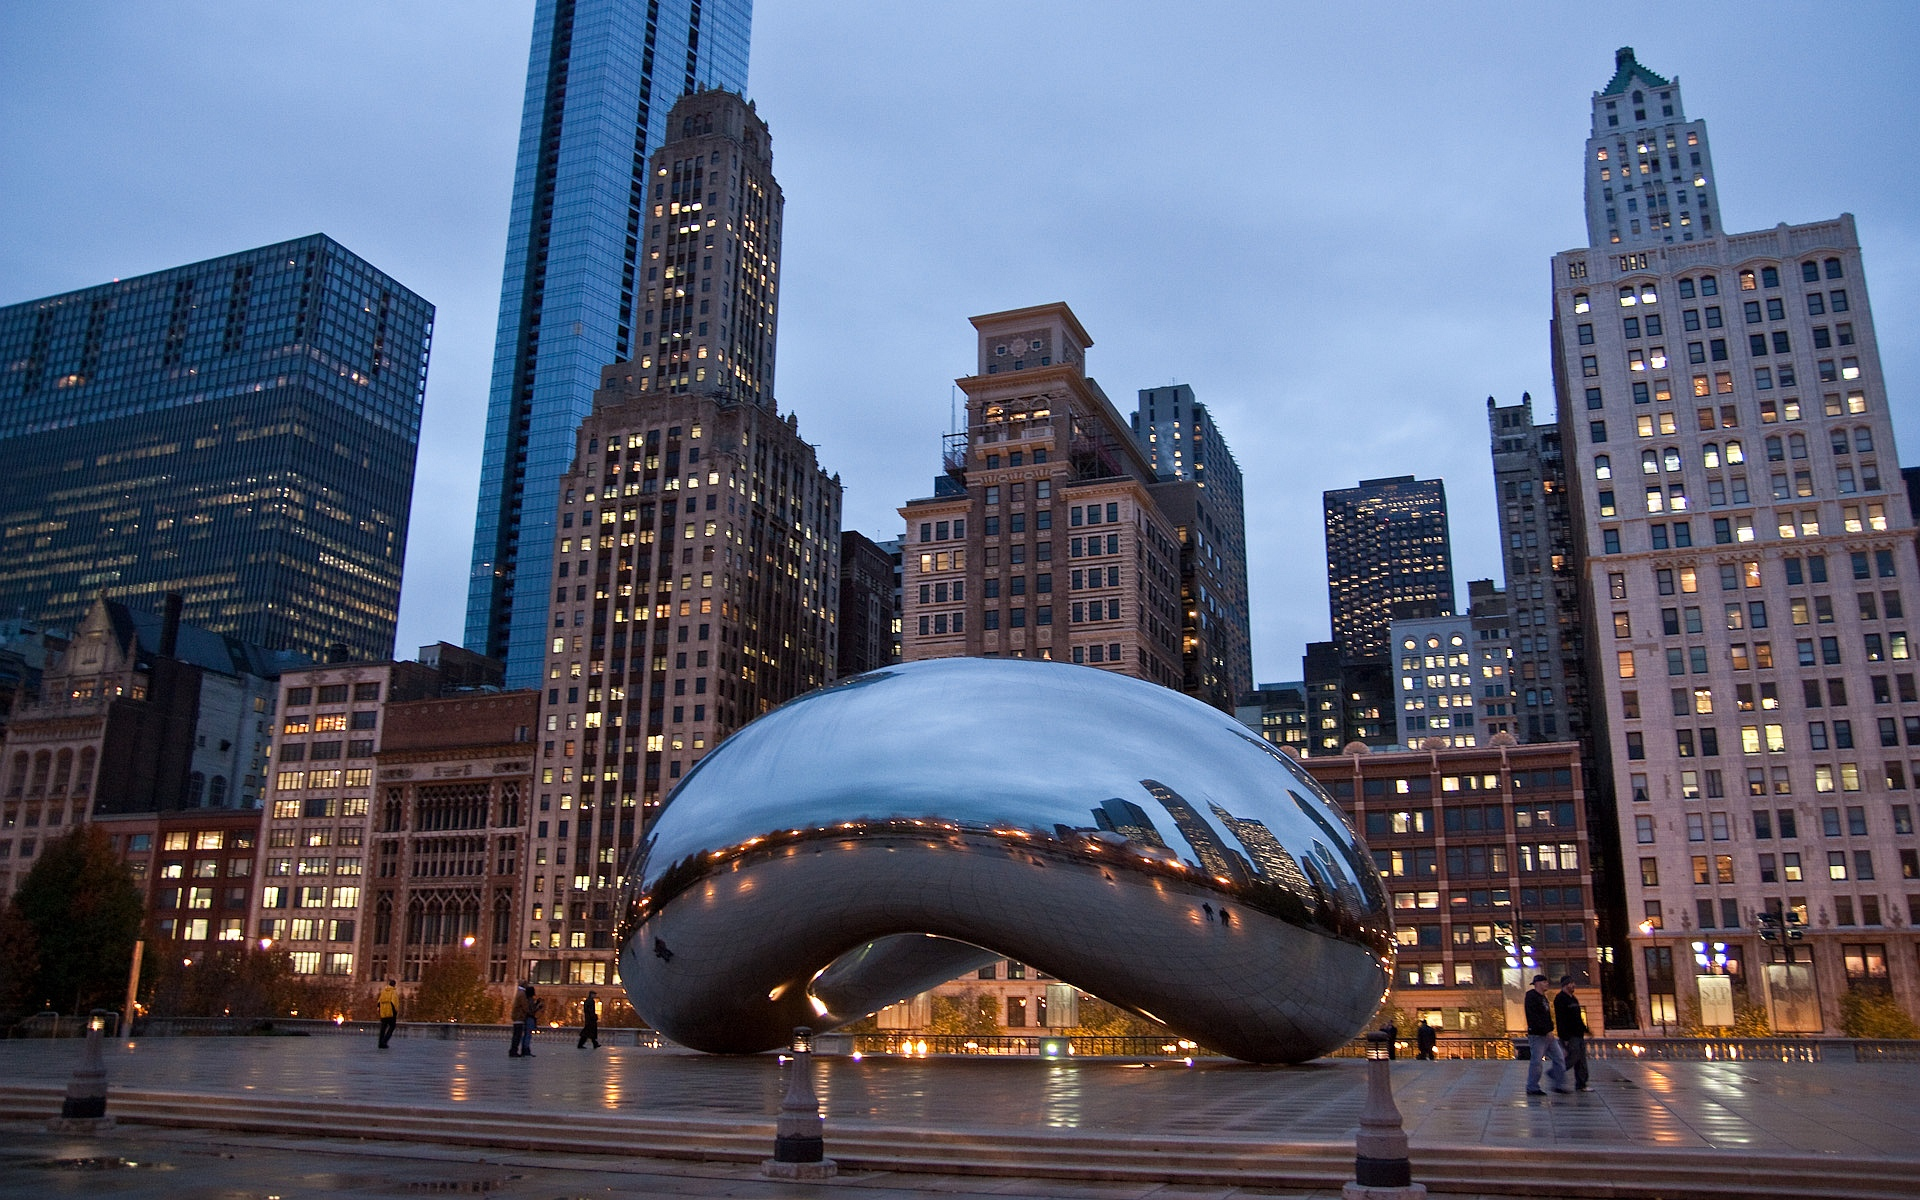 /wp-content/uploads/2014/11/chicago_dreary_bean_1_577085.jpg